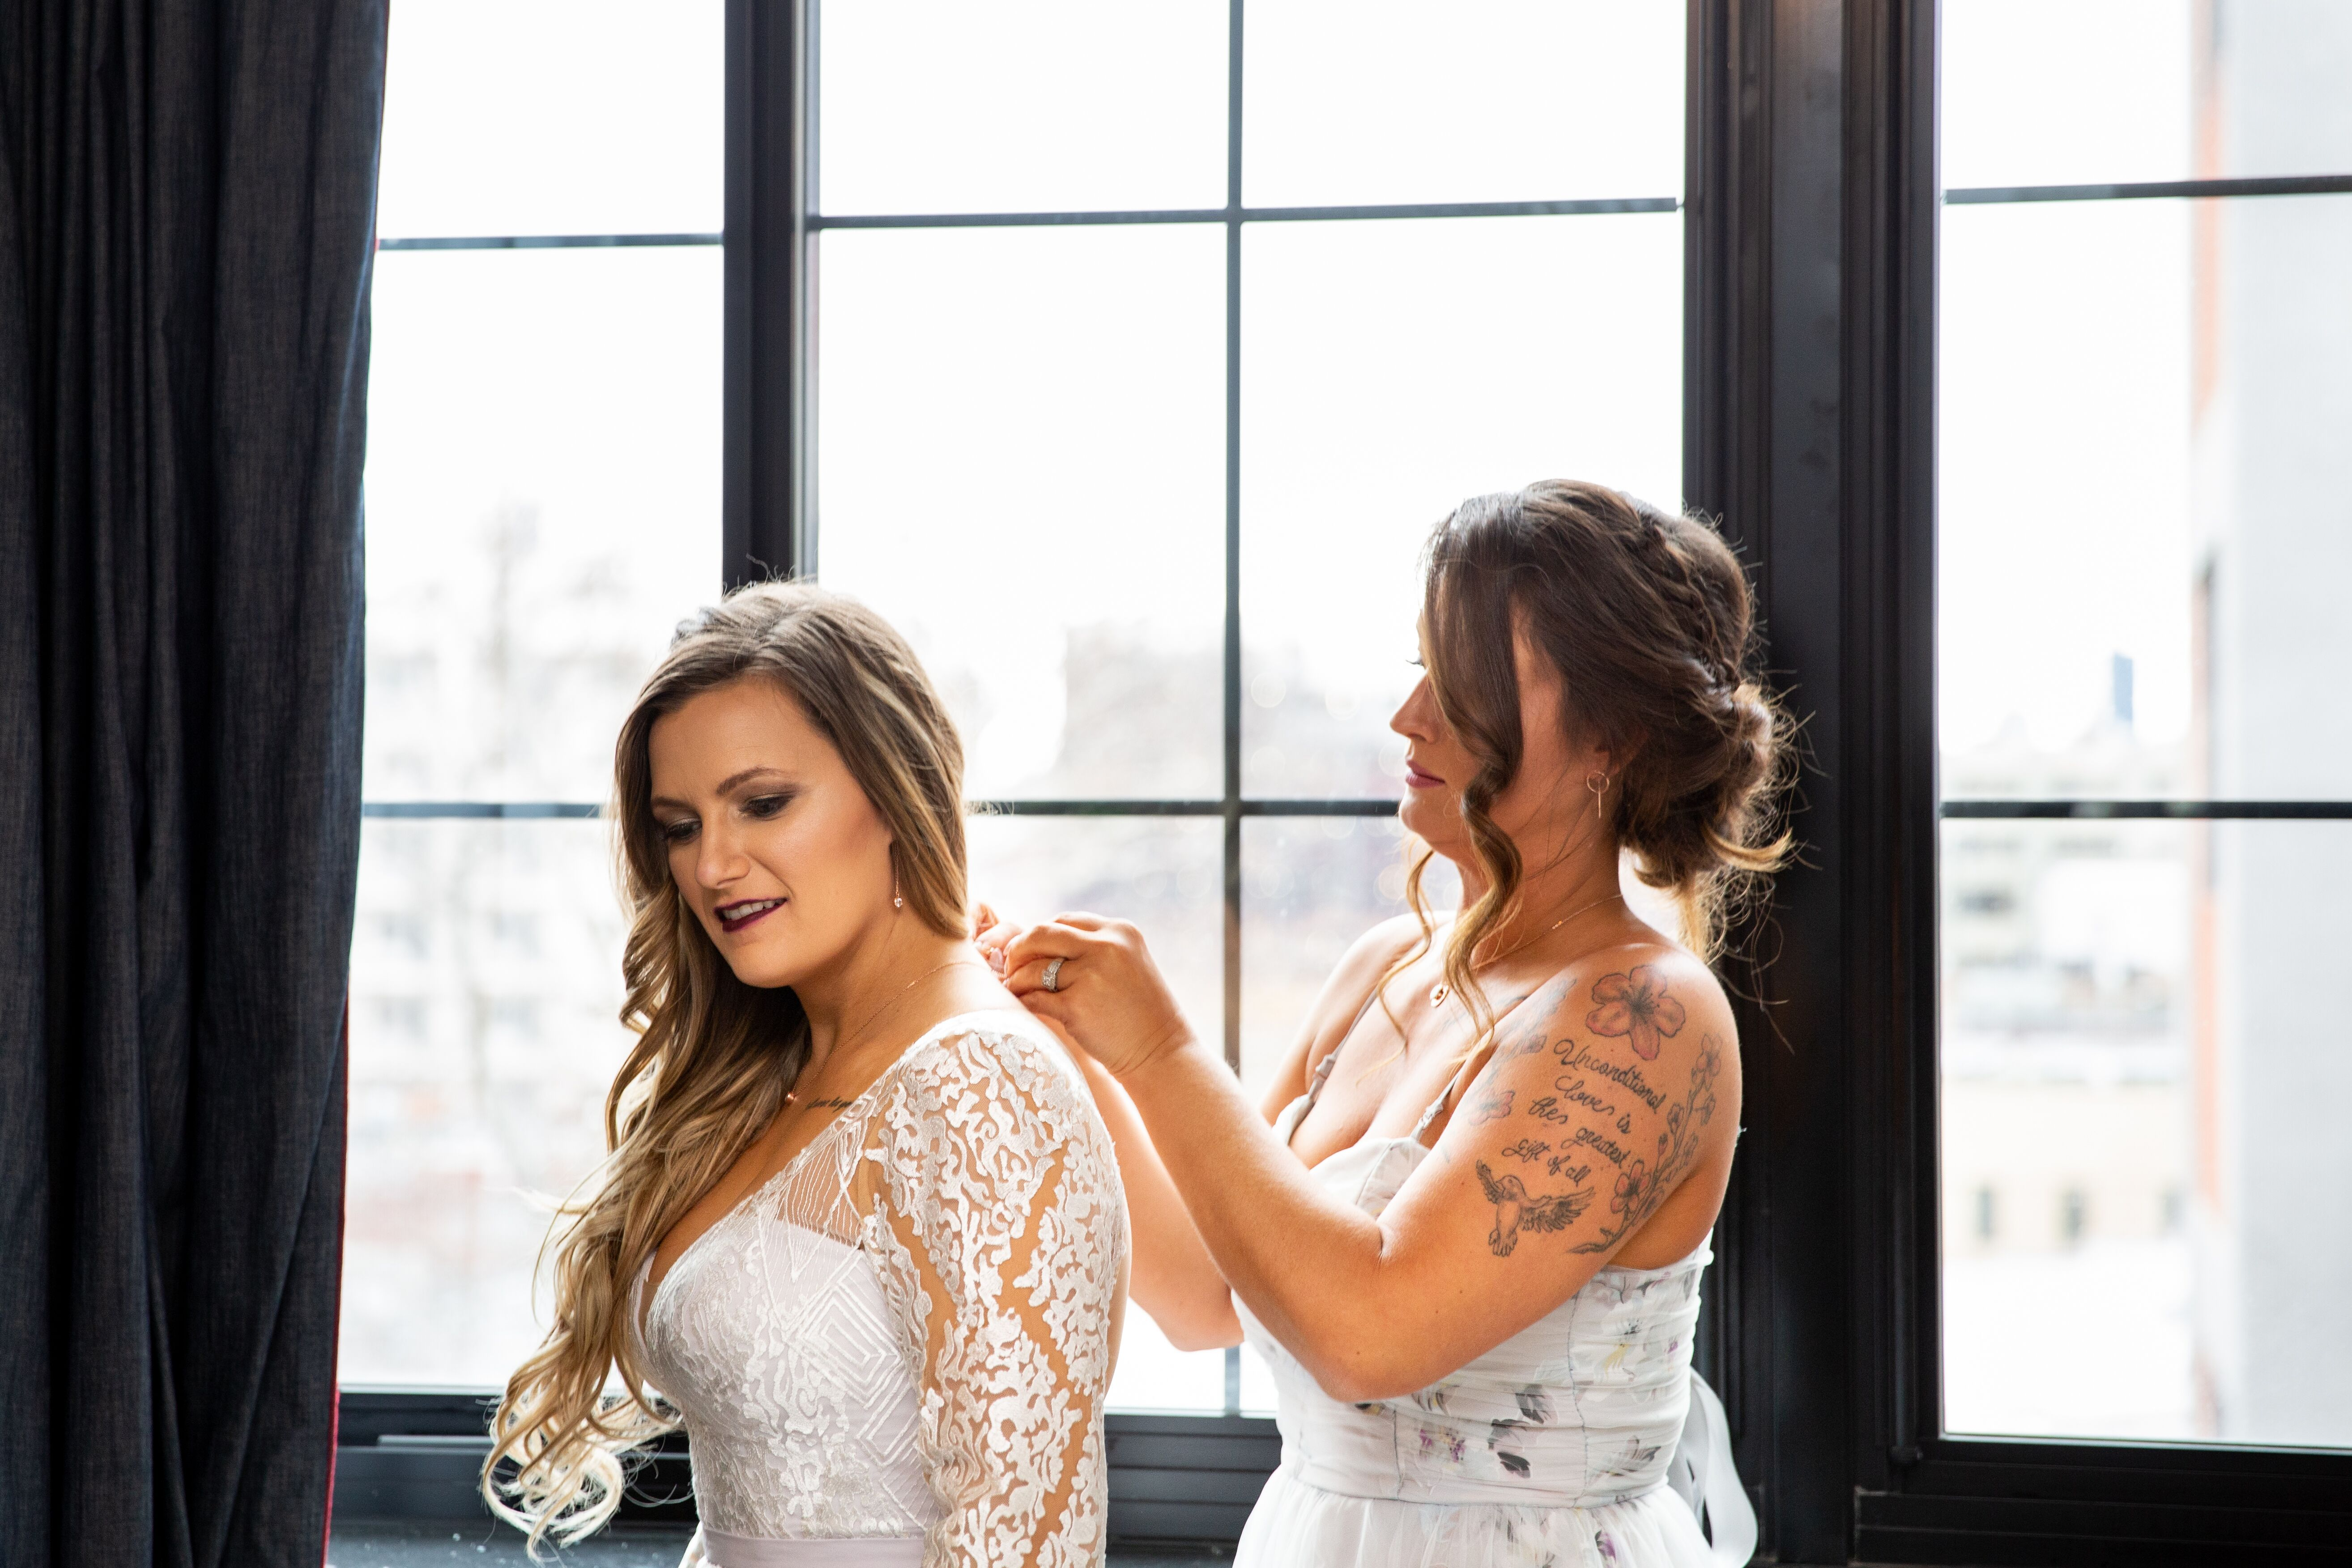 Anomalie bride getting ready in custom wedding dress with boho style and lace sleeves